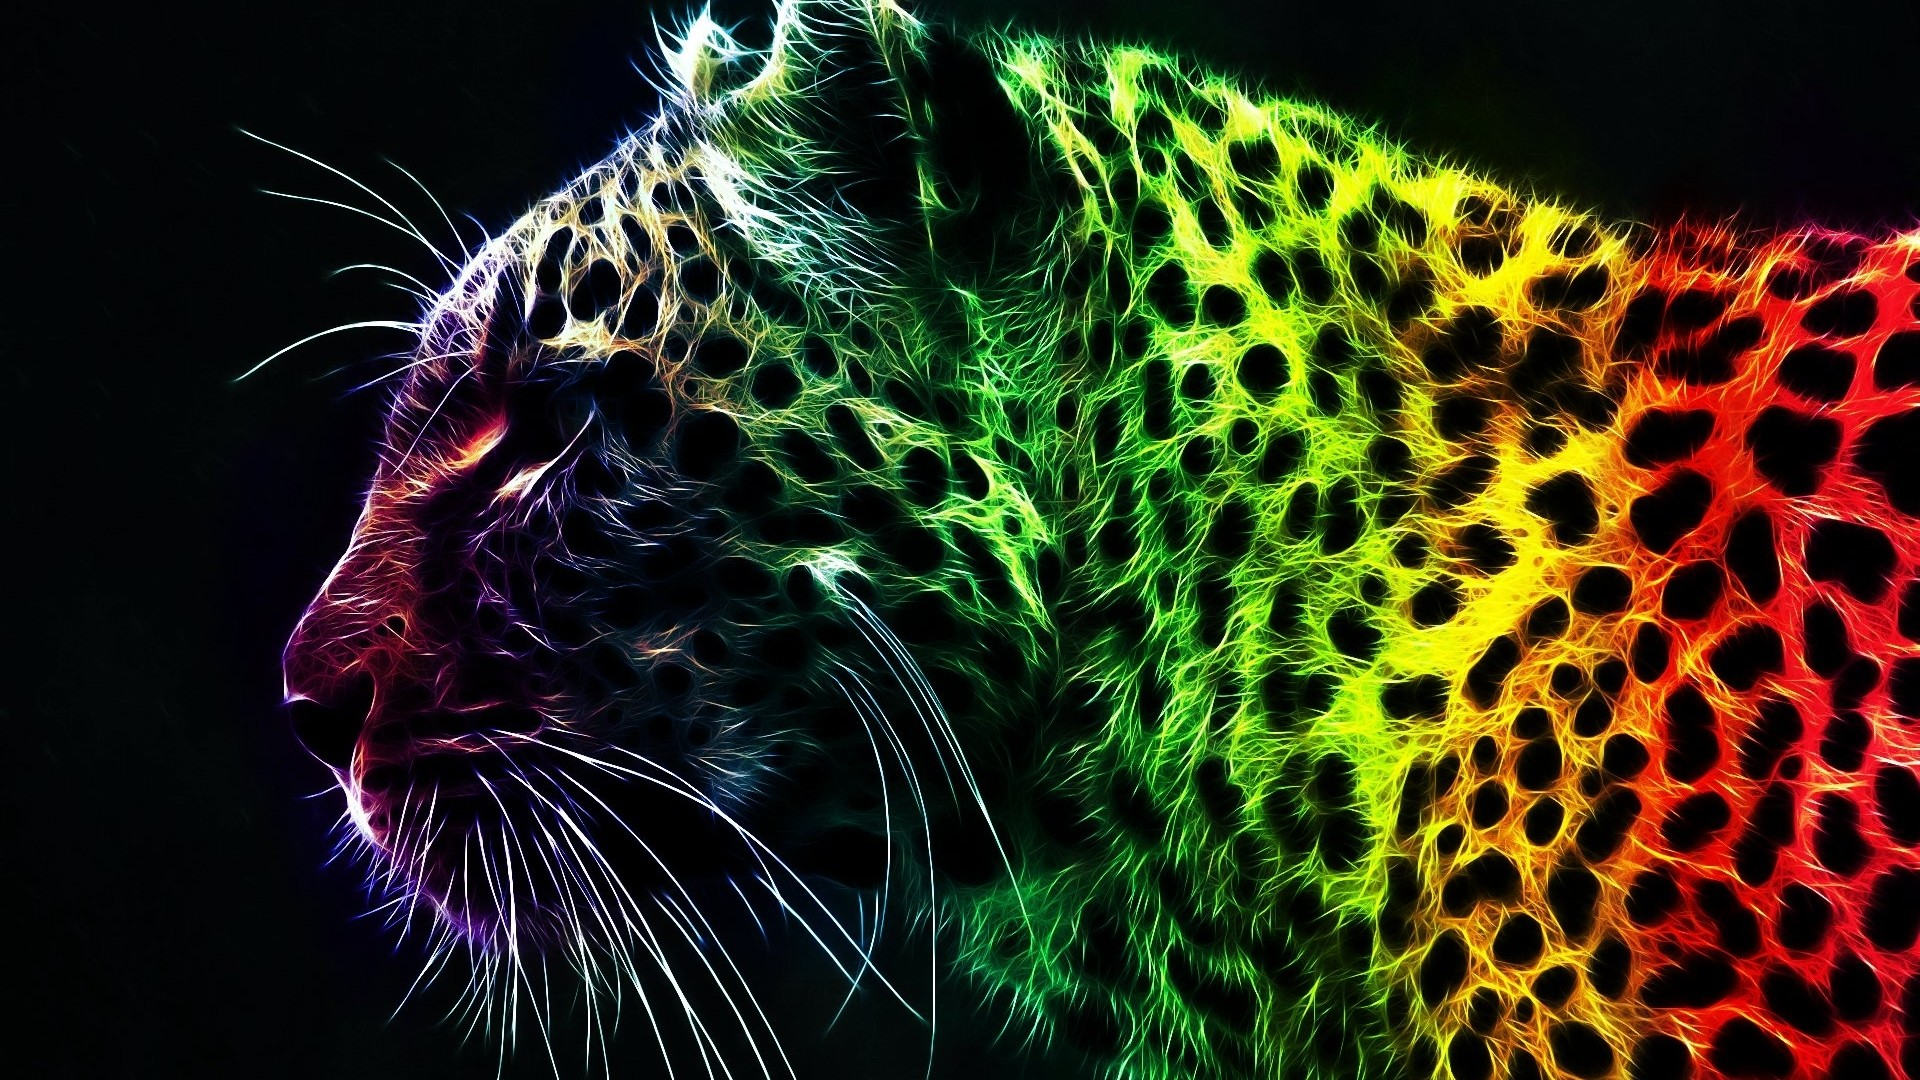 1920x1080 Download Animal Abstract Art Hd Wallpaper | Full HD Wallpapers